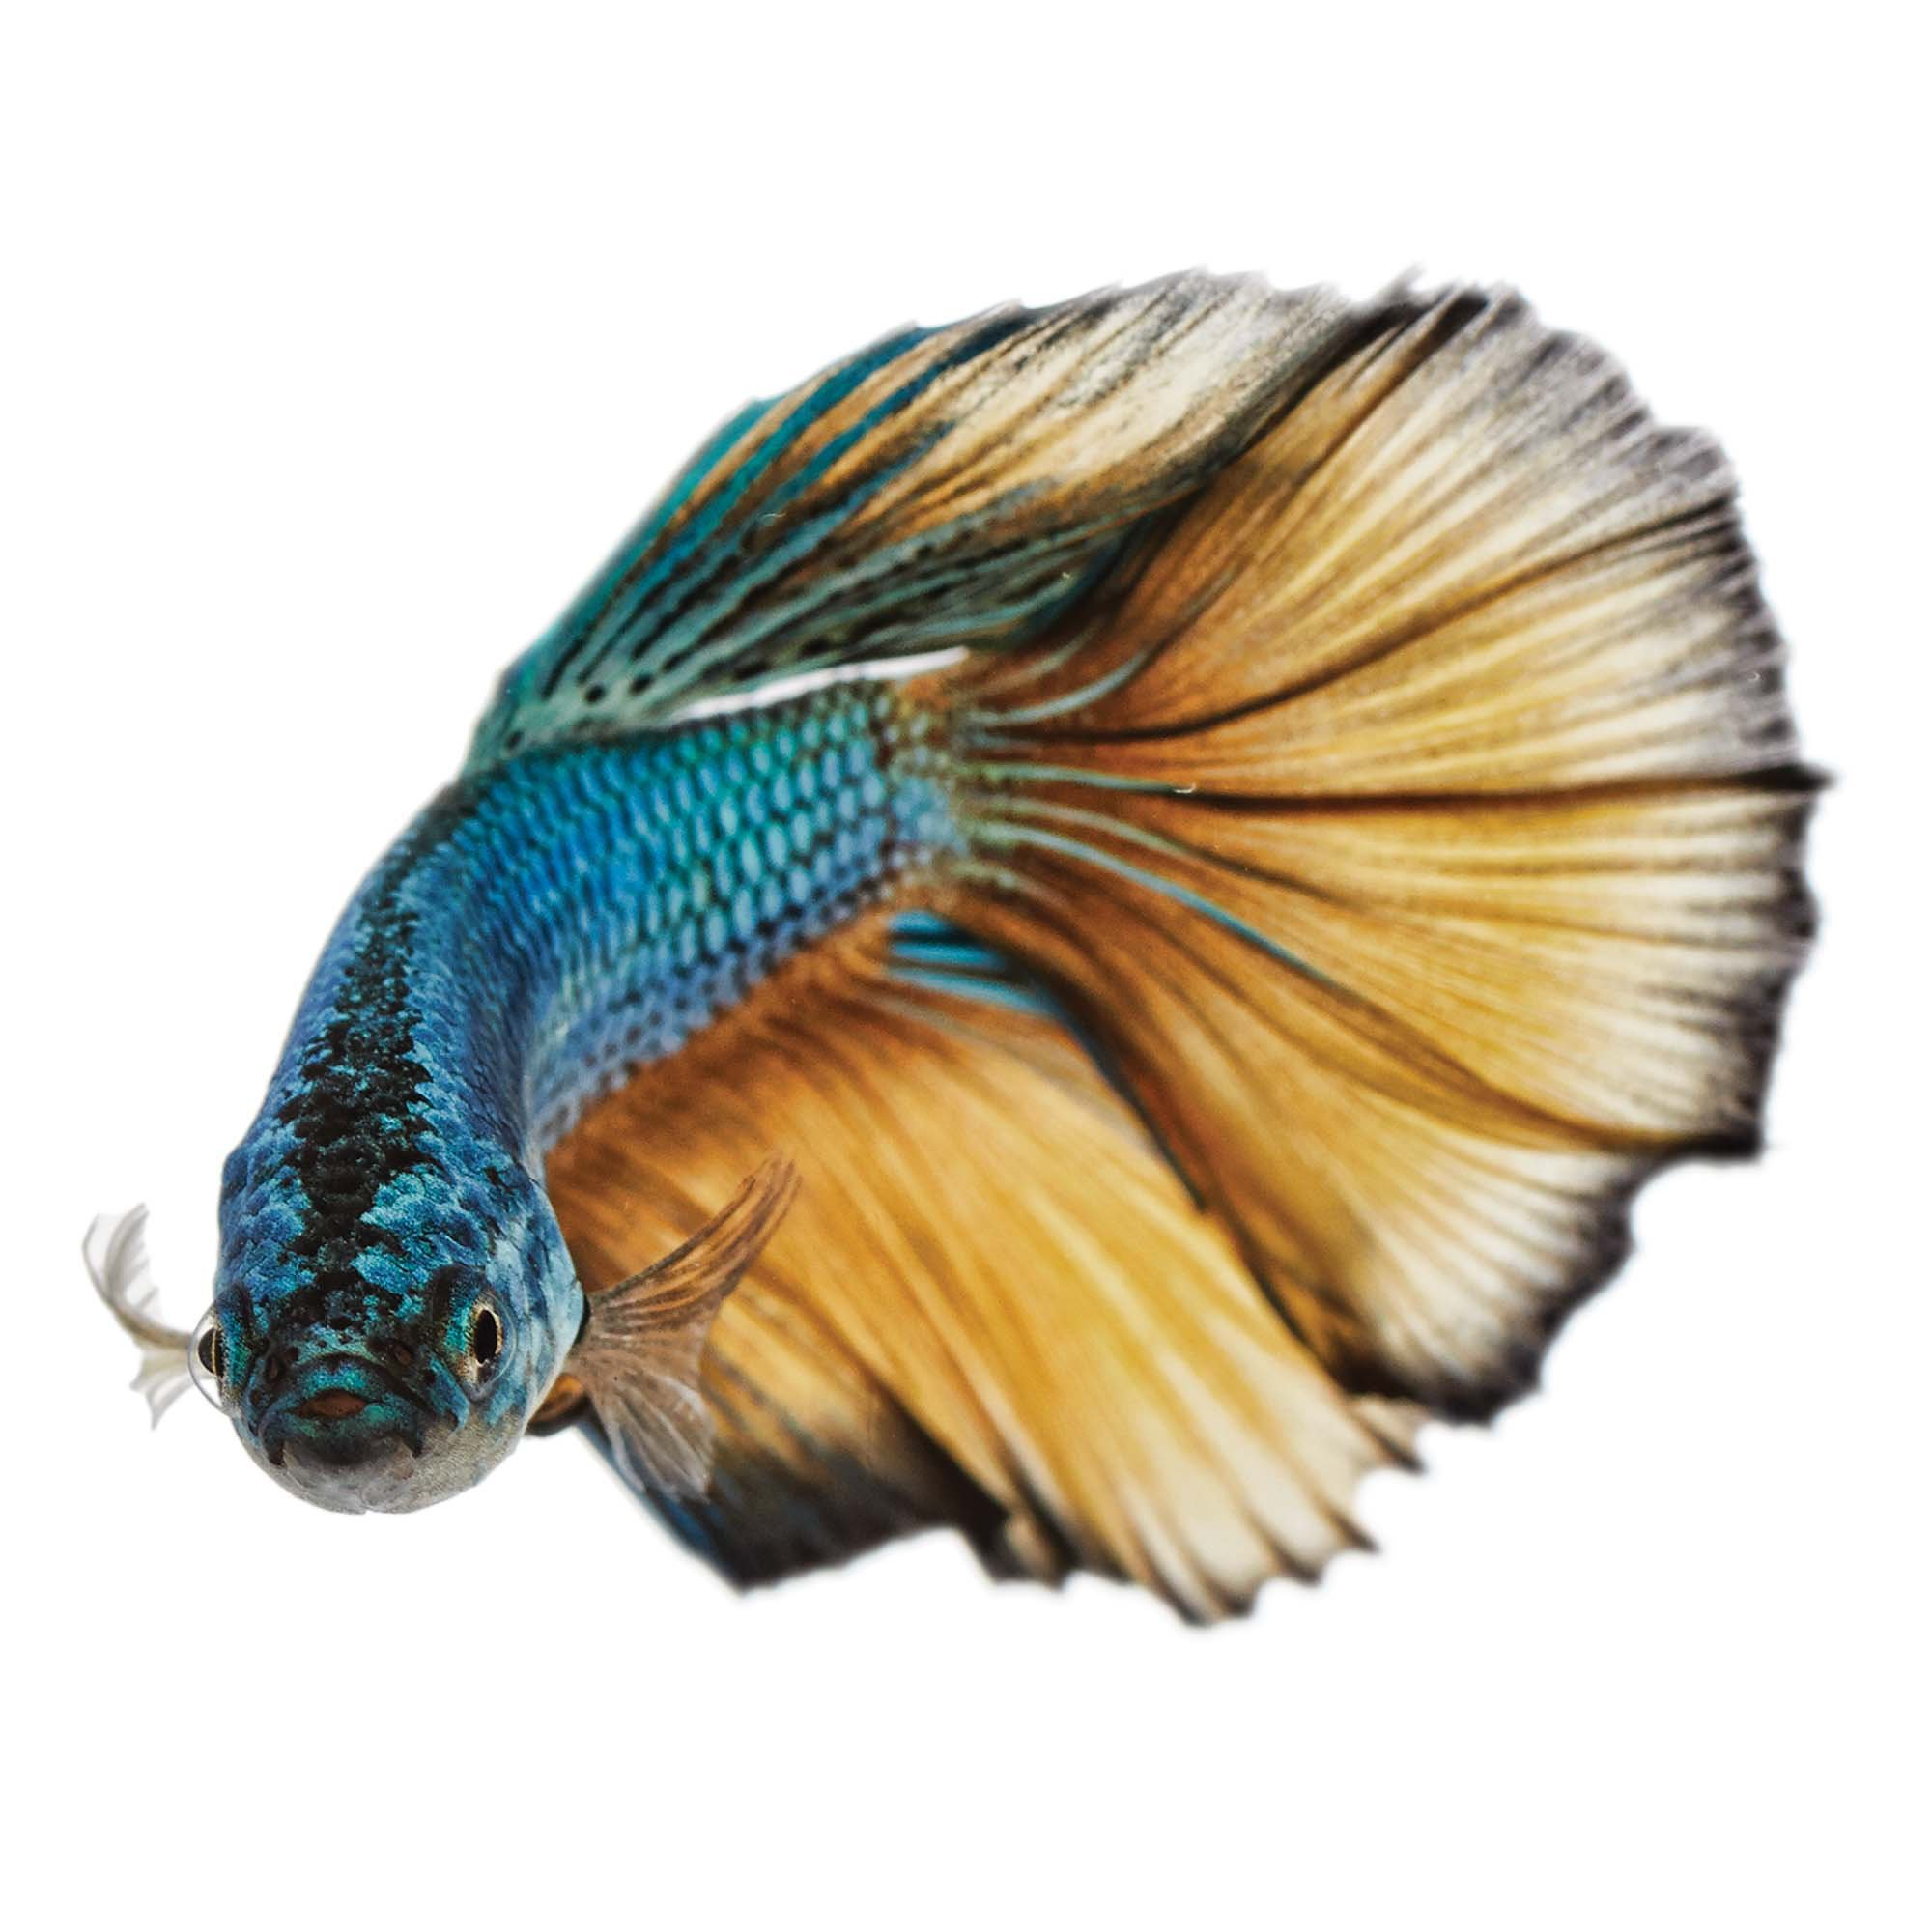 Paradise betta petco for Healthy betta fish